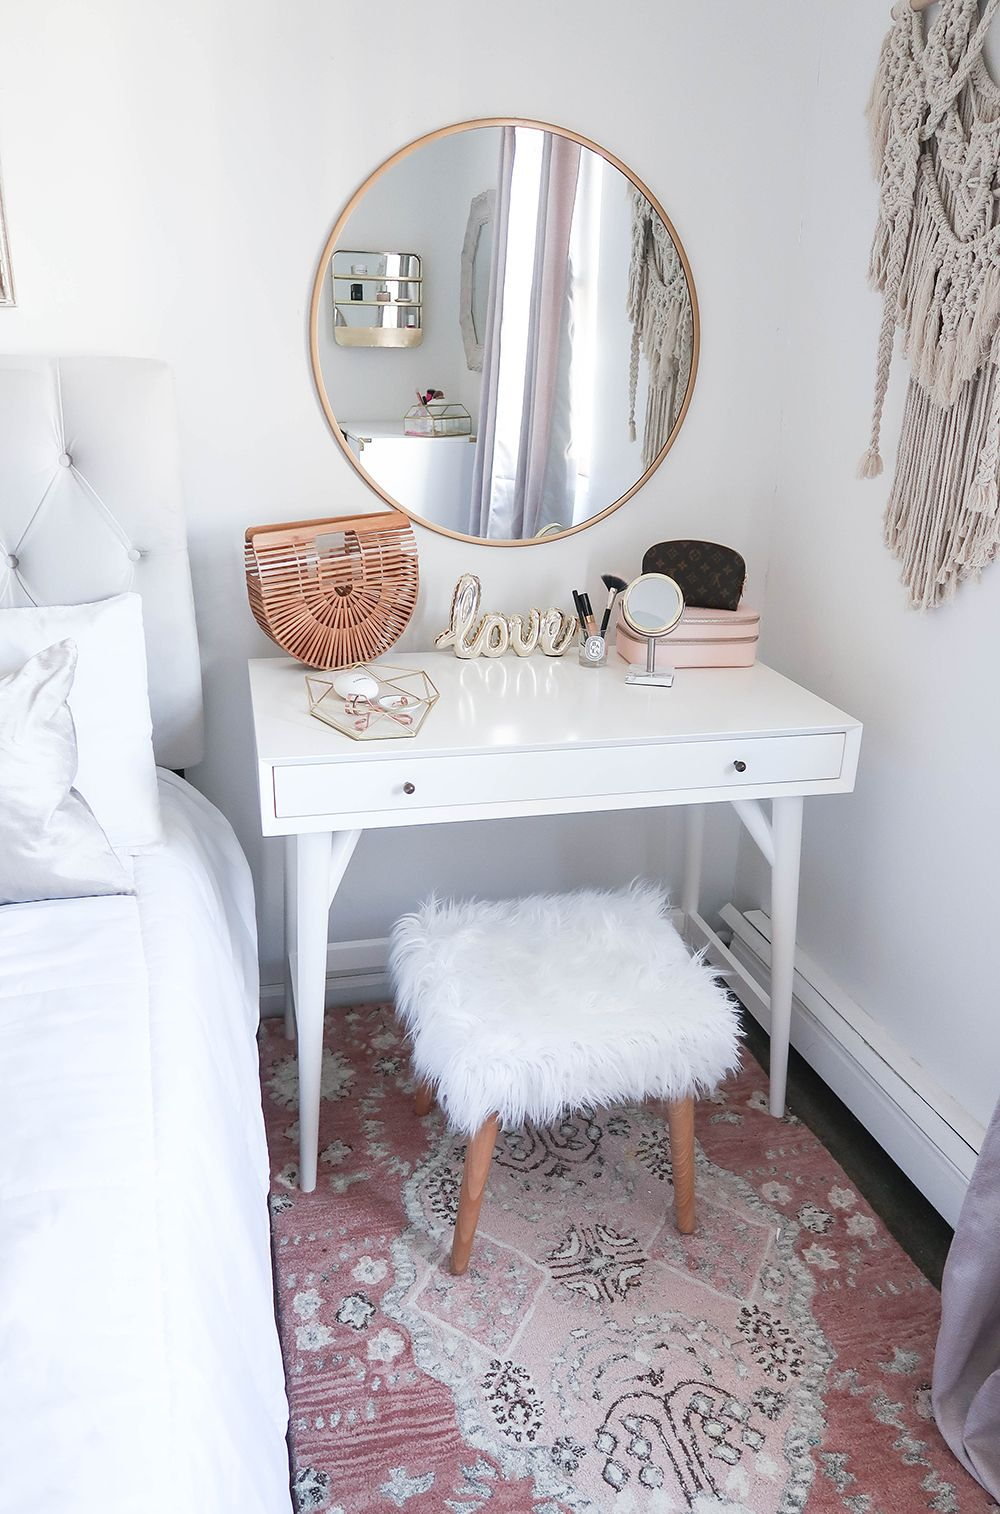 10 Small Bedroom Vanity Ideas Most Of The Brilliant And Stunning Bedroom Decor Brown Living Room Bedroom Design